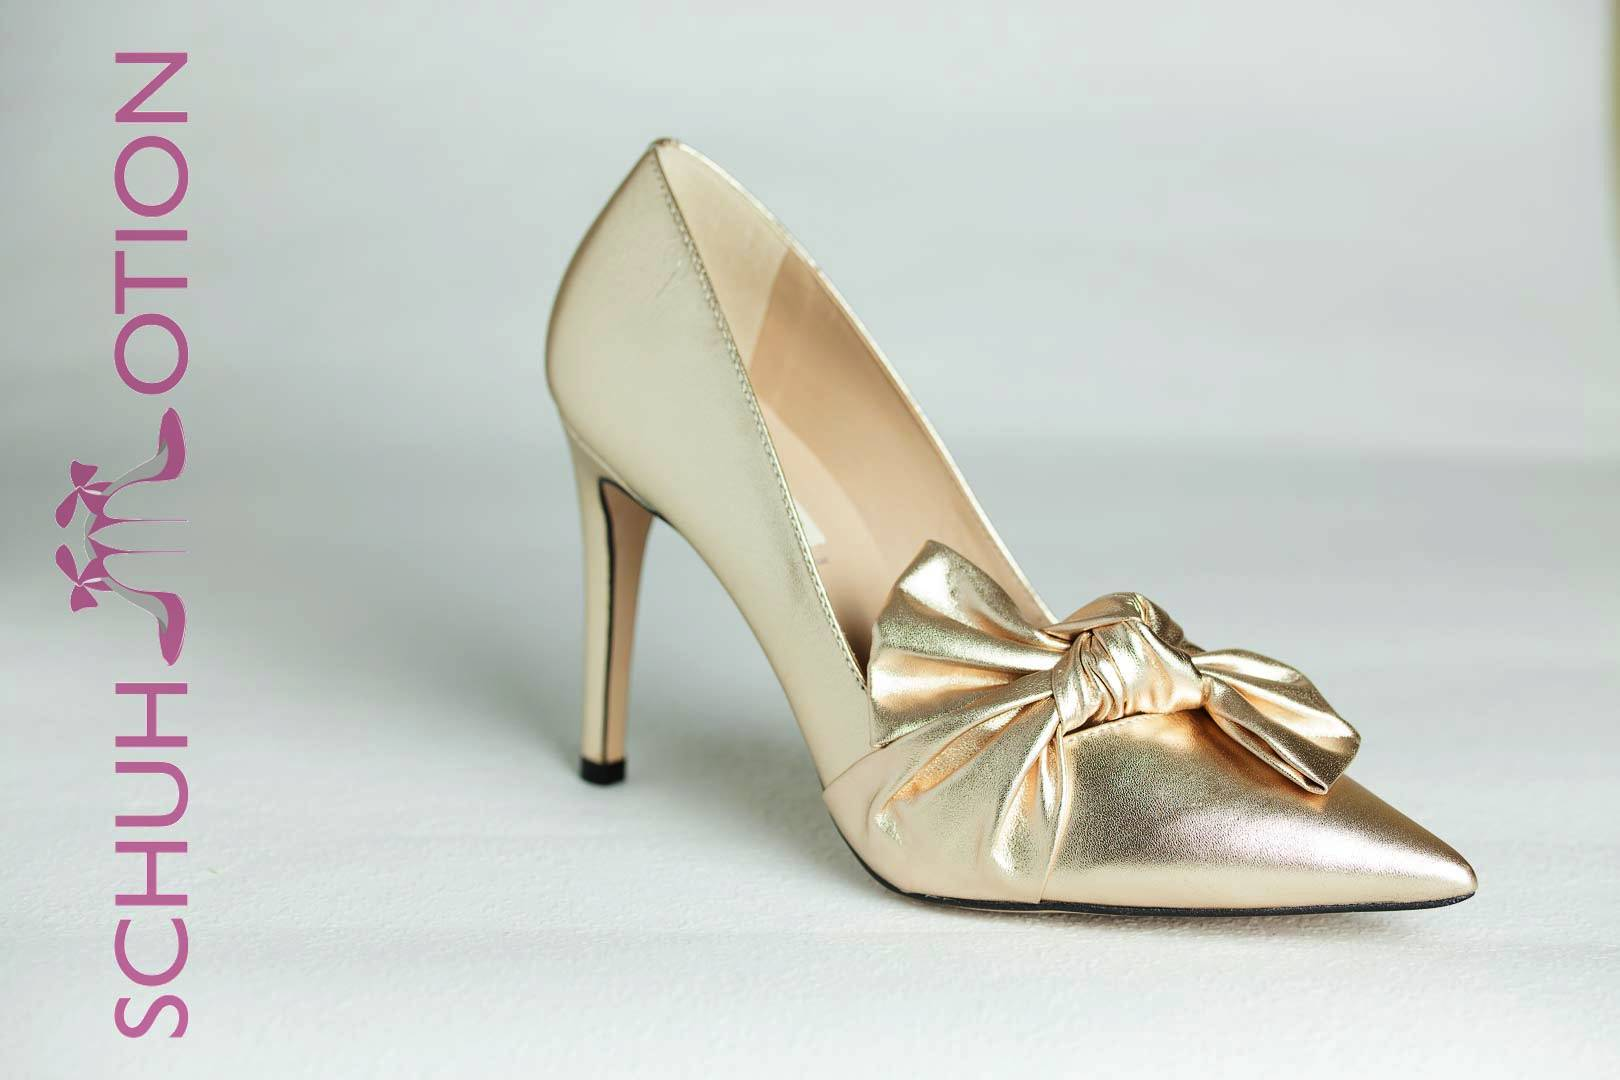 54d283f721b663 Pumps mit Masche champagne – Schuhmotion – www.schuhmotion.at